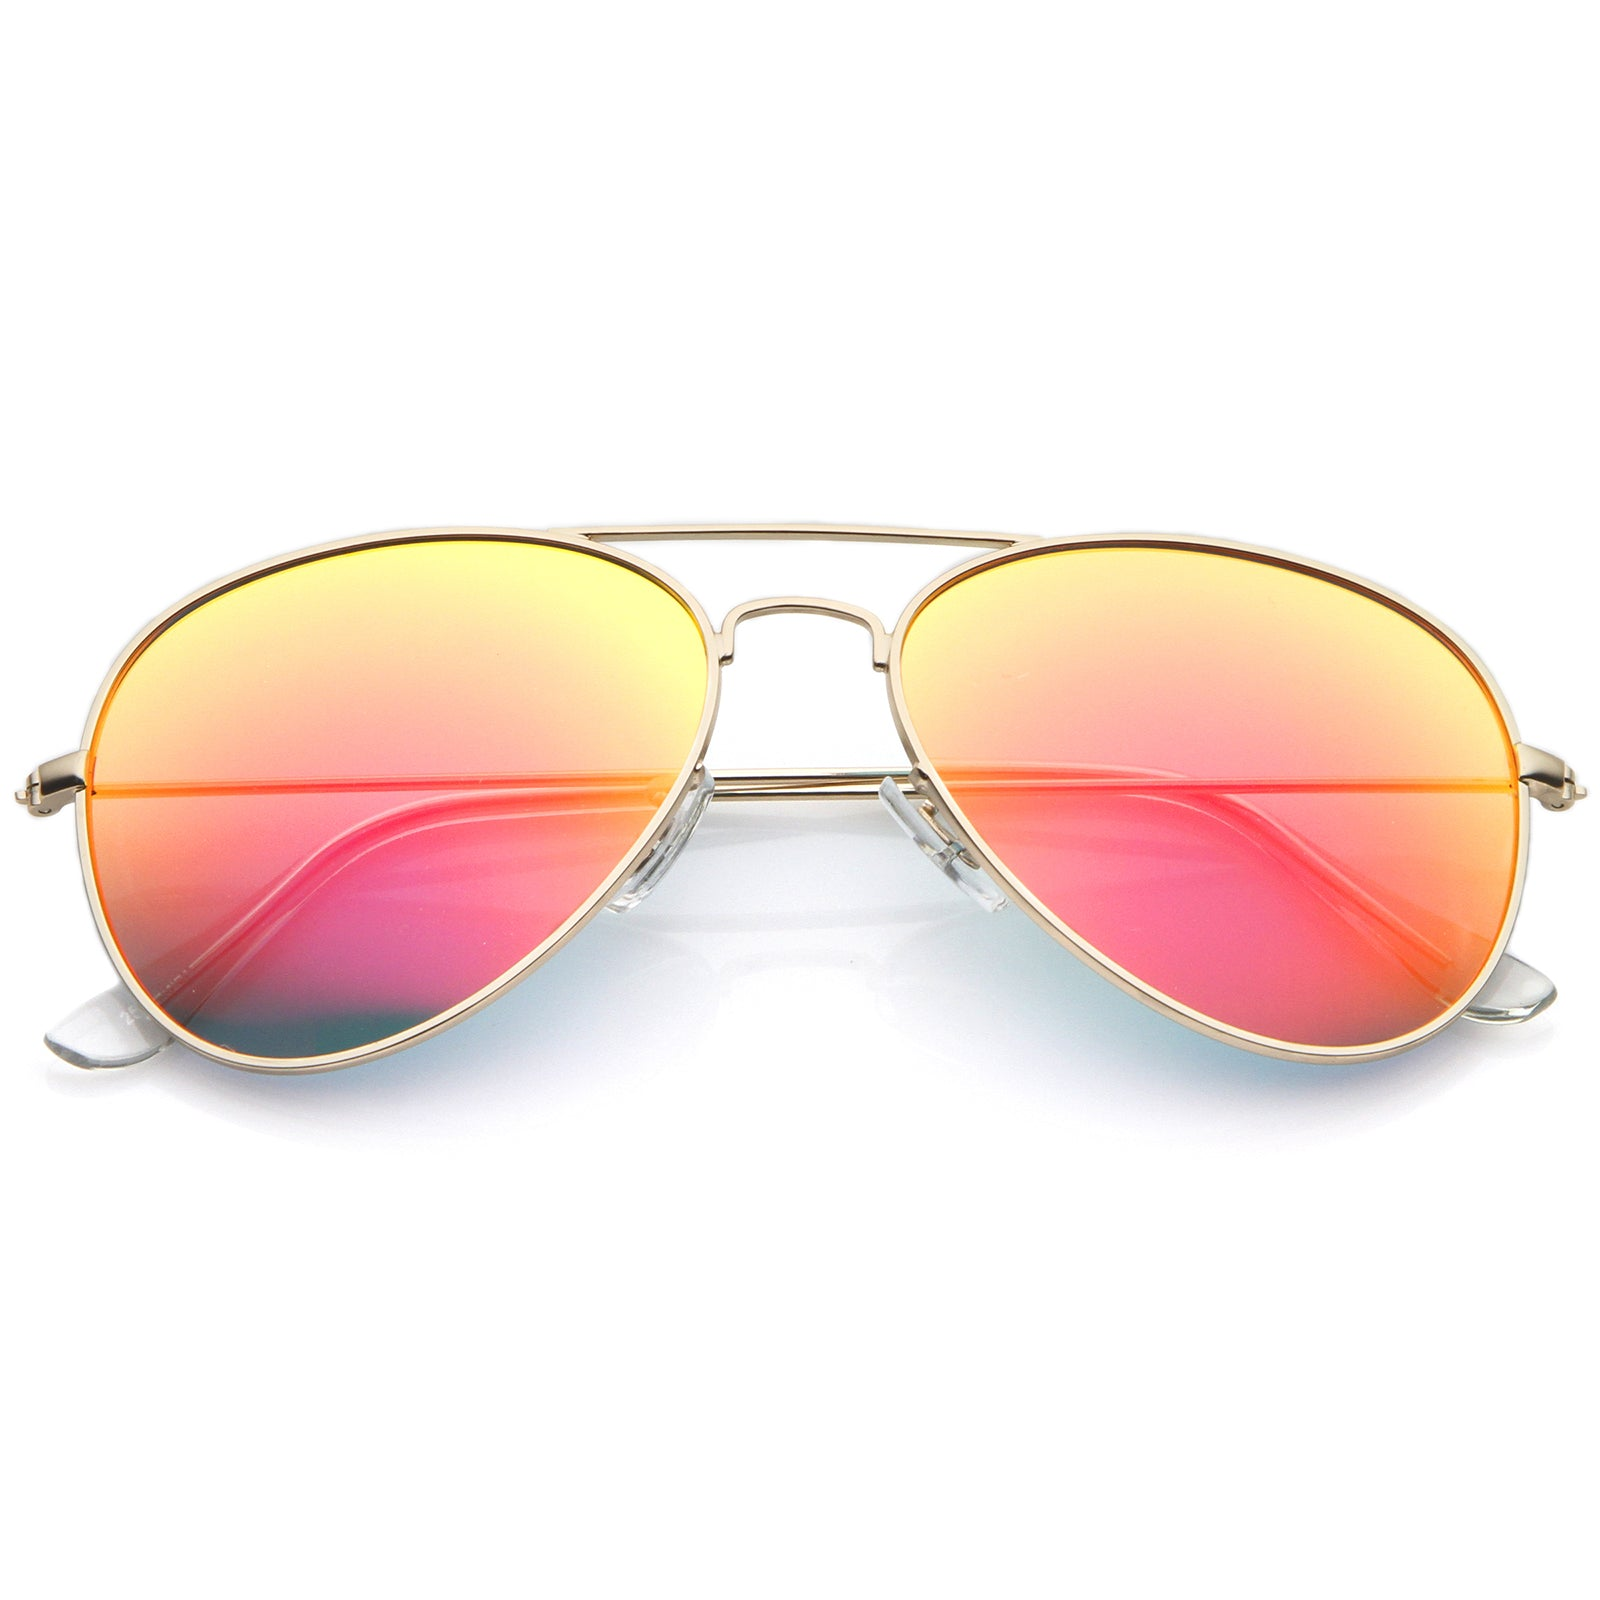 Premium Nickel Plated Frame Multi-Coated Mirror Lens Aviator Sunglasses 59mm - sunglass.la - 5